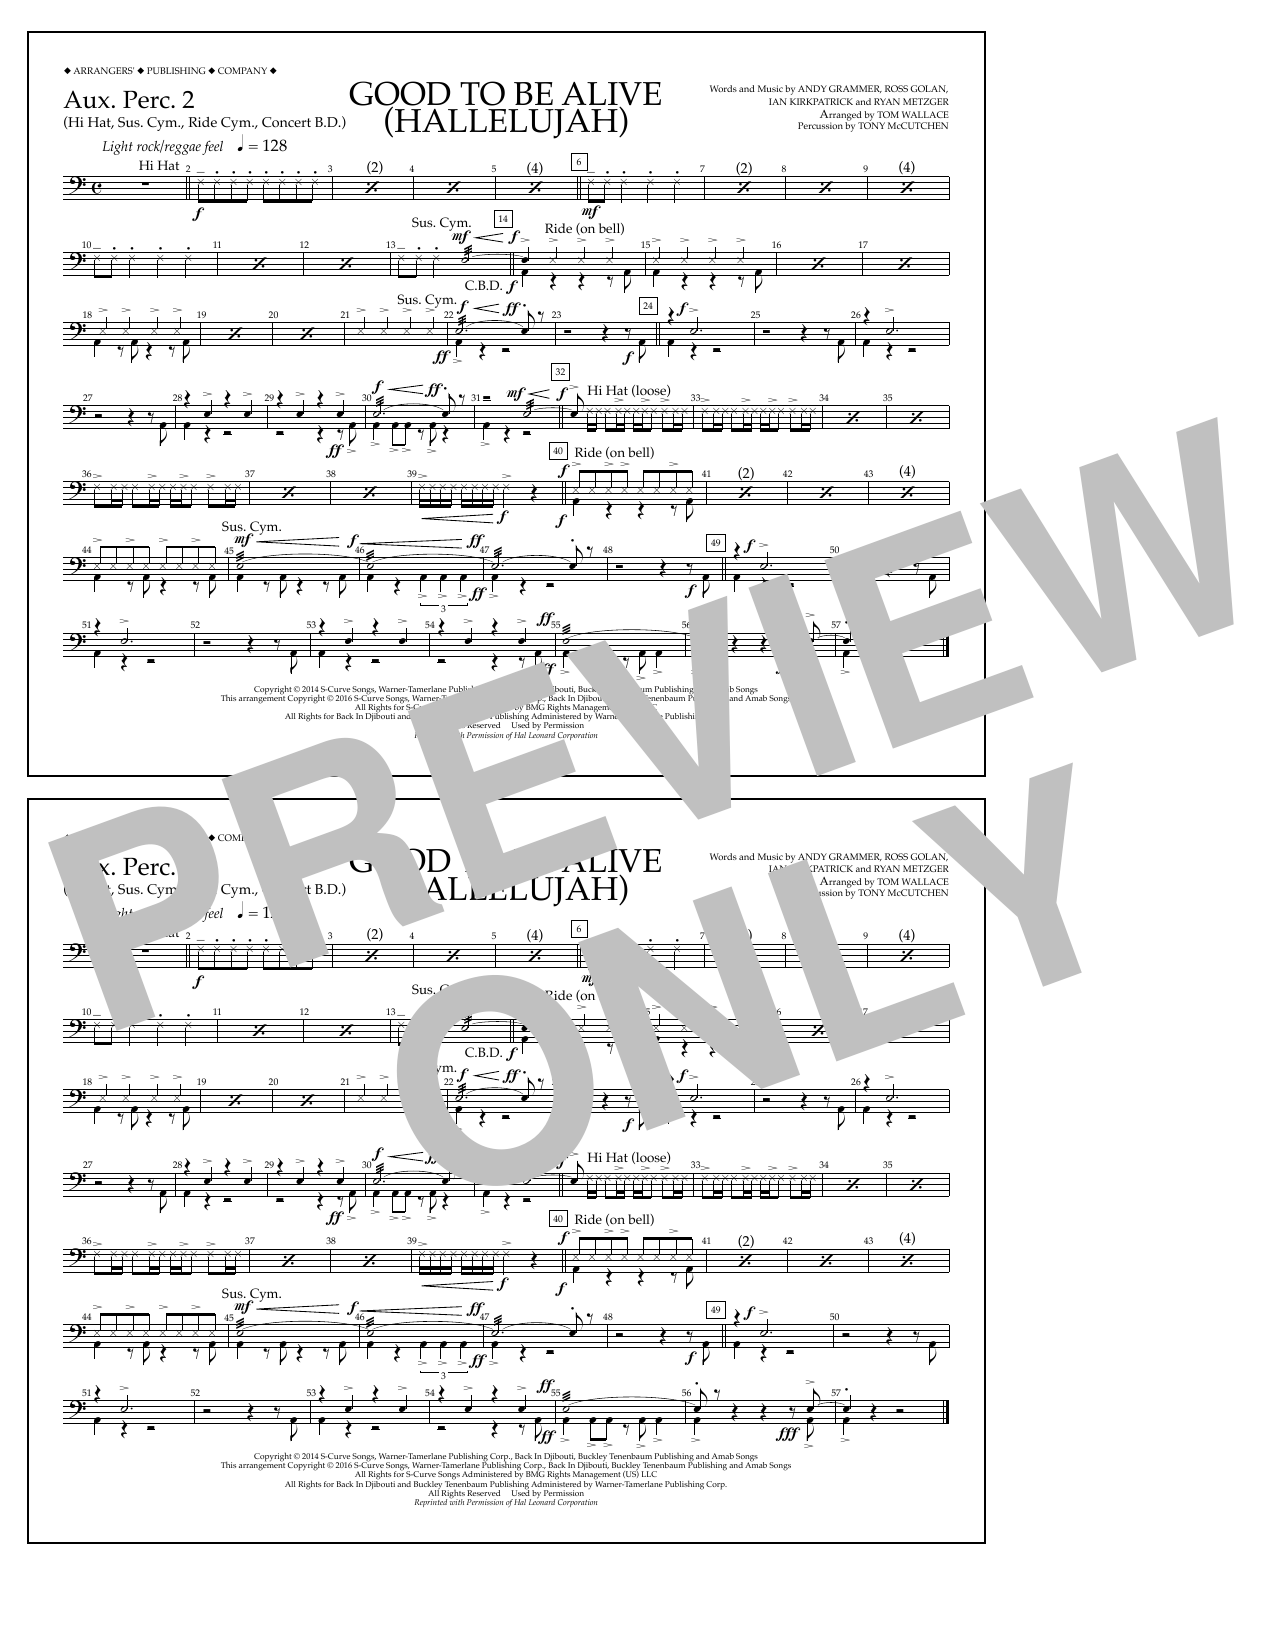 Good to Be Alive (Hallelujah) - Aux. Perc. 2 Sheet Music